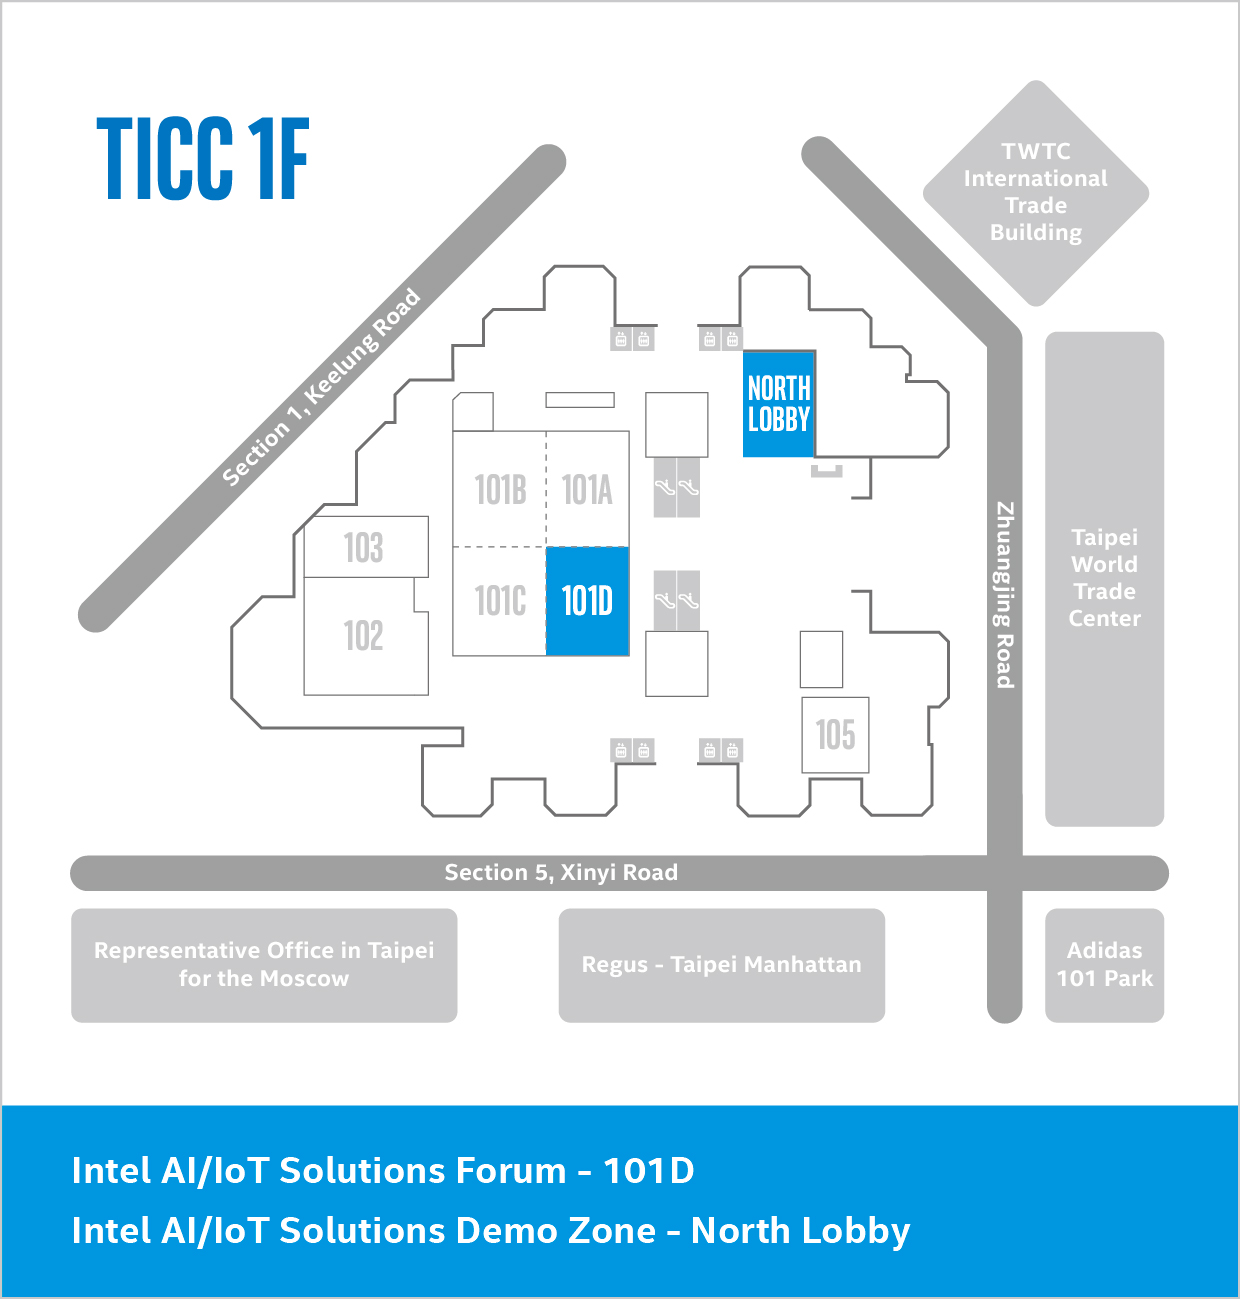 COMPUTEX 2019 Taipei International Convention Center Map